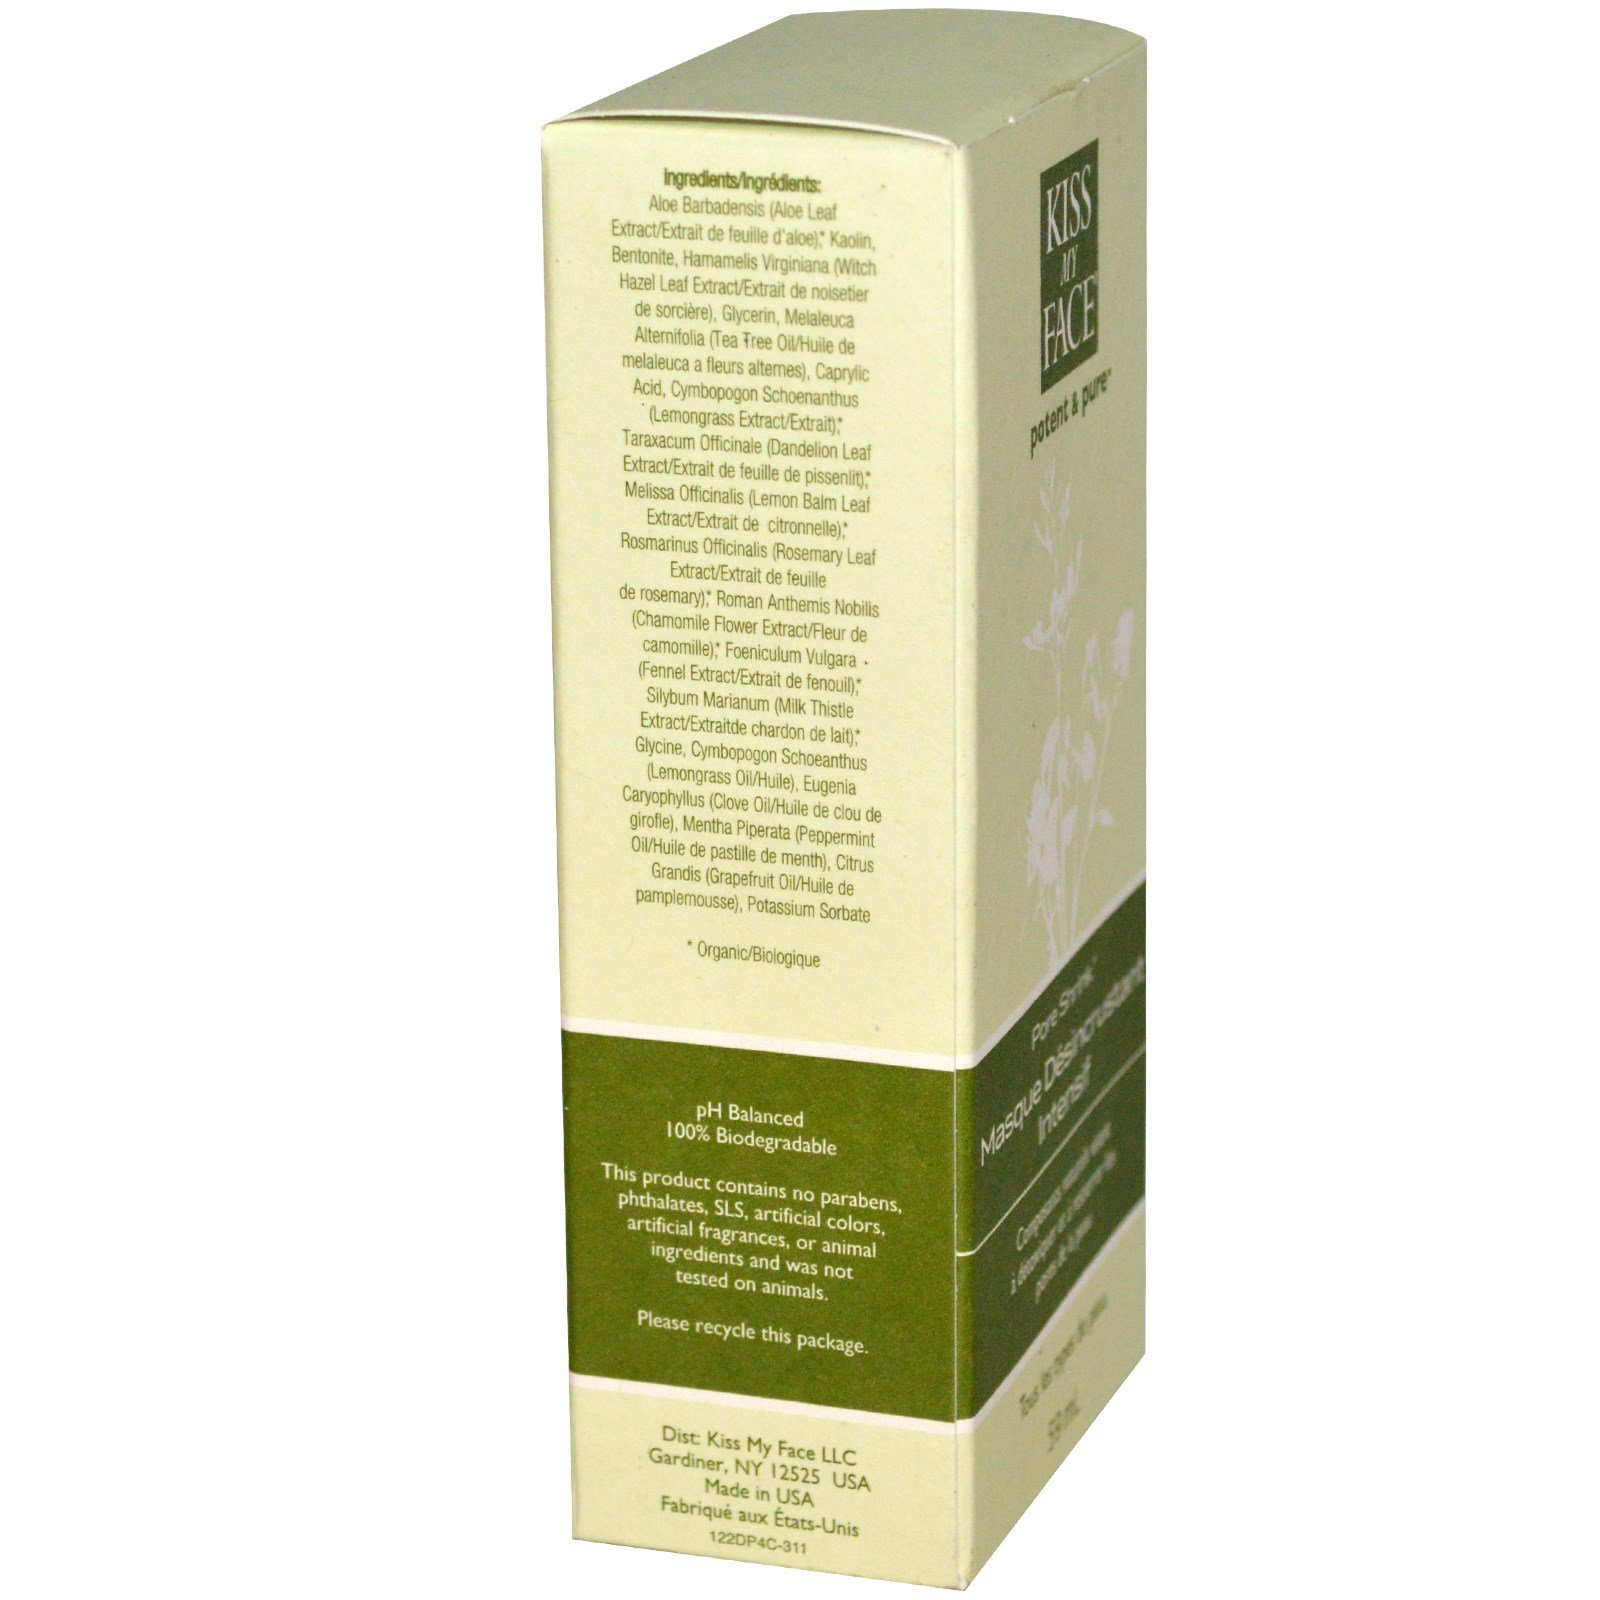 Pore Shrink Deep Cleansing Mask by Kiss My Face #16